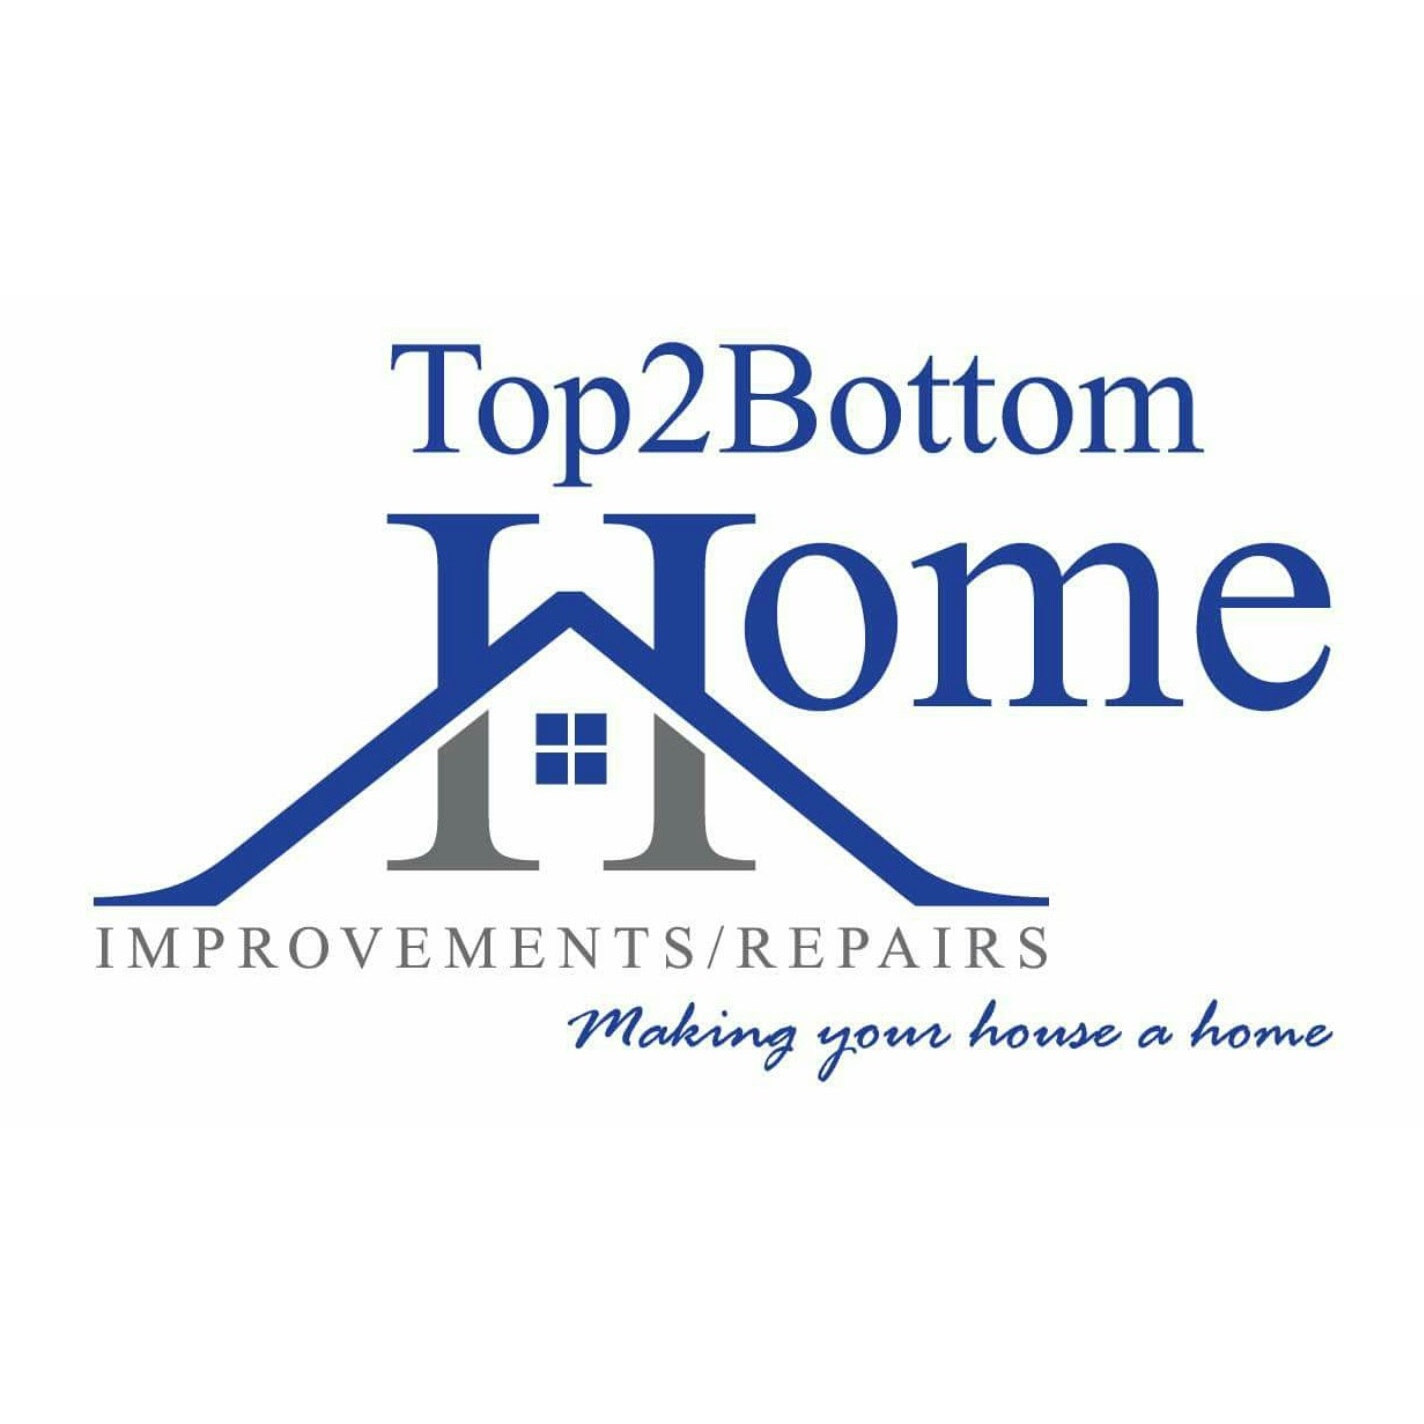 Top 2 Bottom Home Improvements